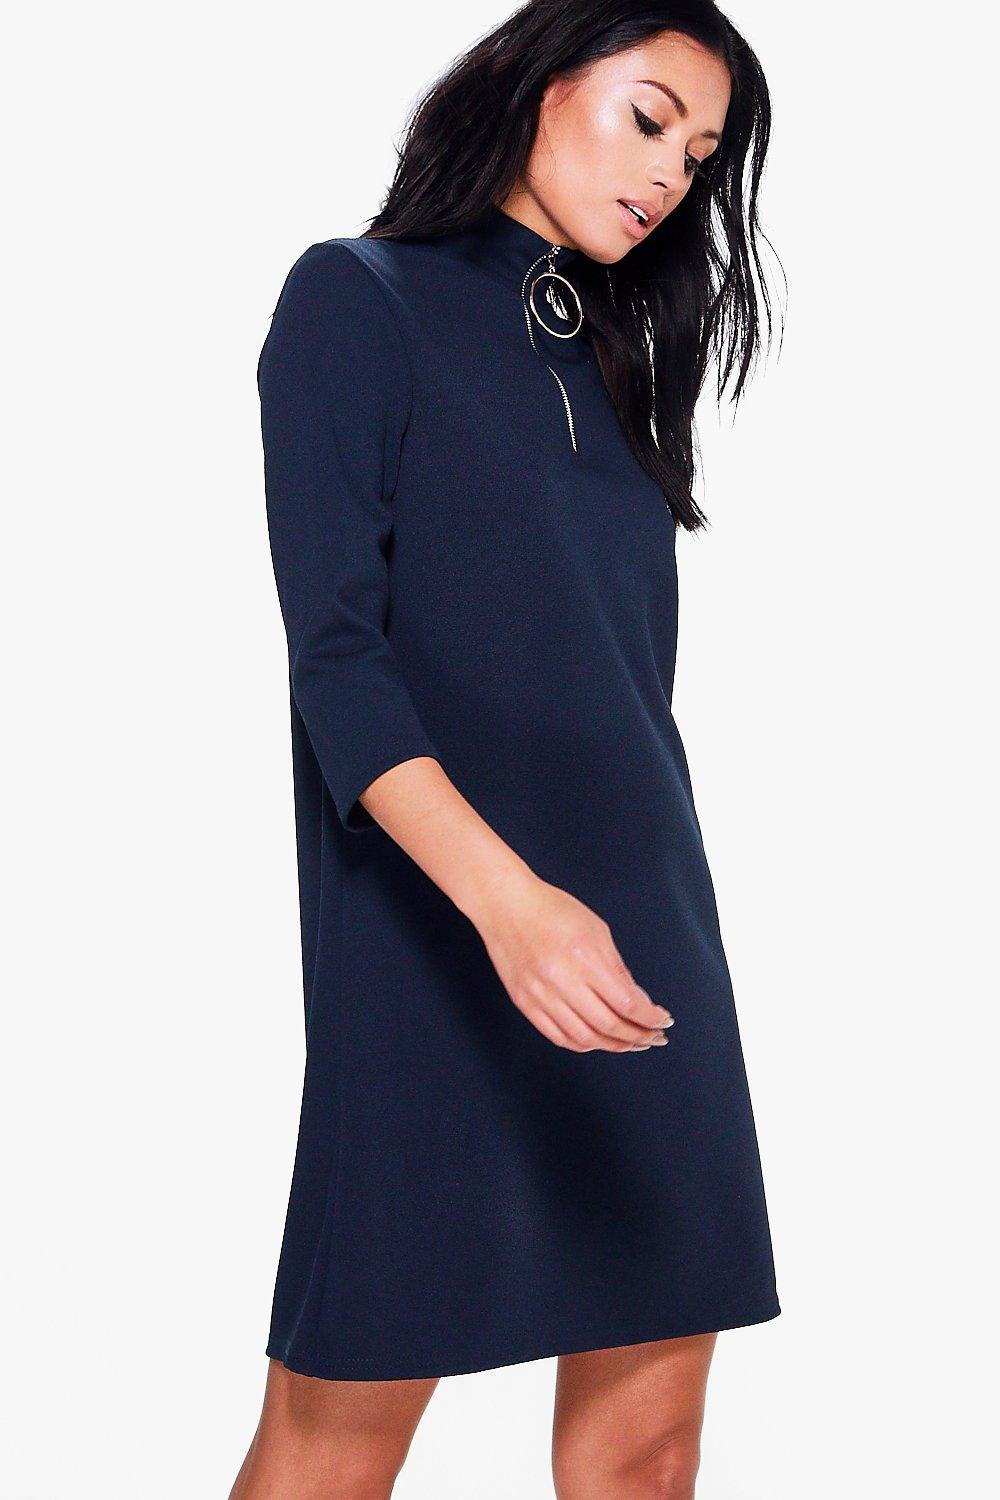 986c584a4061 Womens Navy Nina Tailored Zip Detail Swing Dress. Hover to zoom